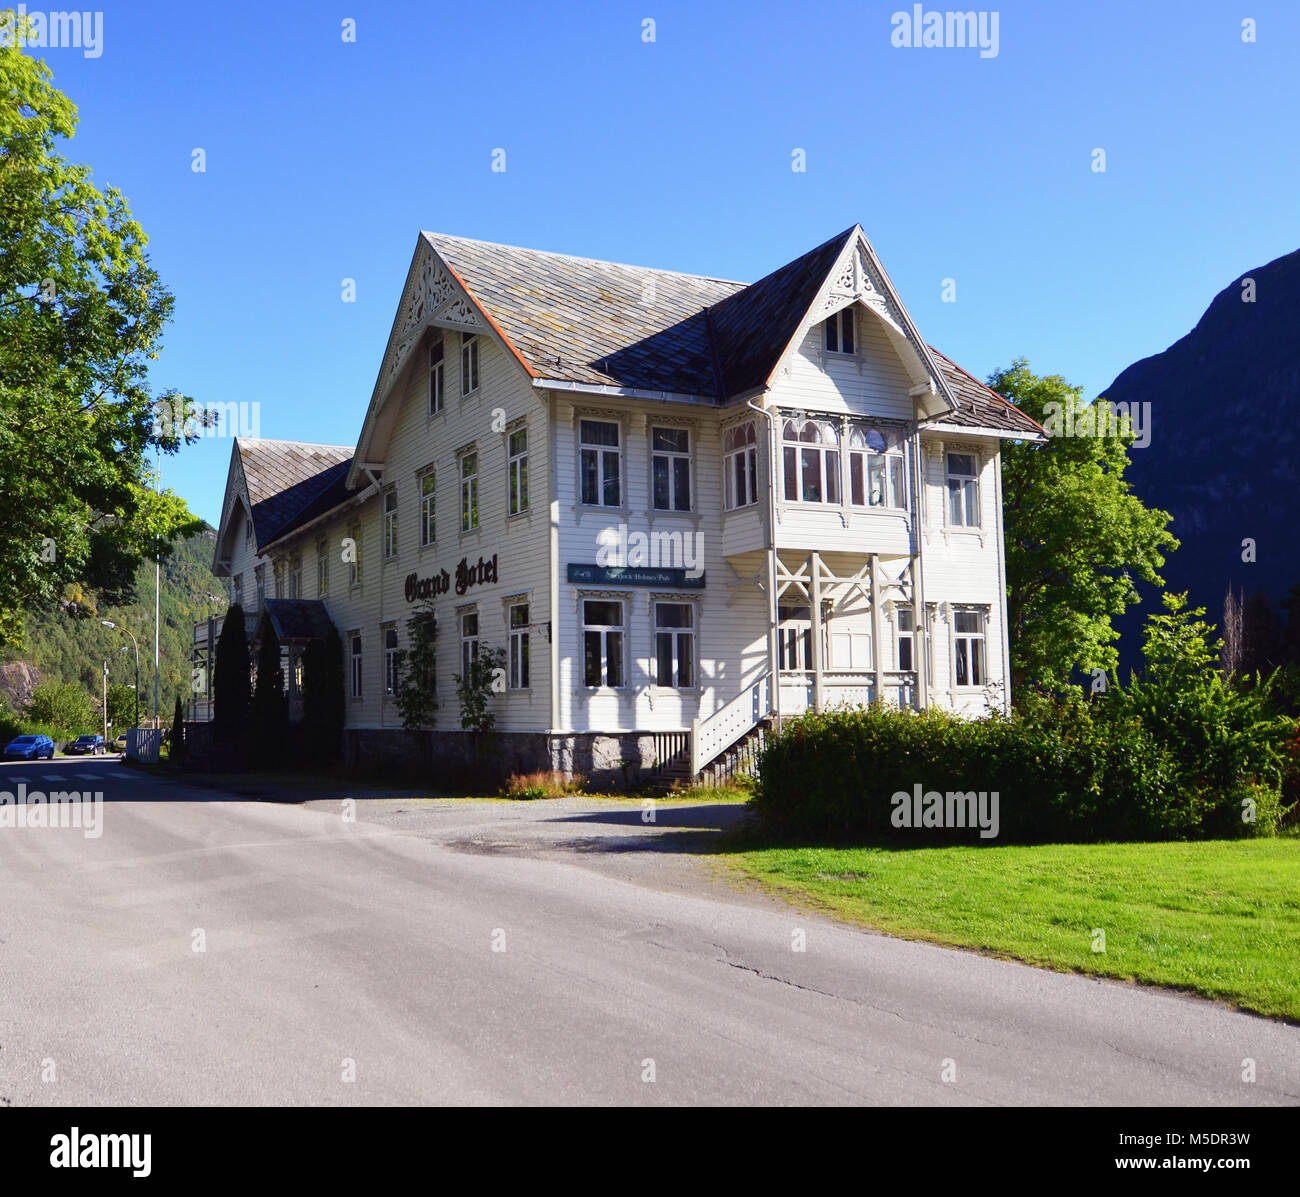 Geiranger norway town stock photos geiranger norway town for Small historic hotels